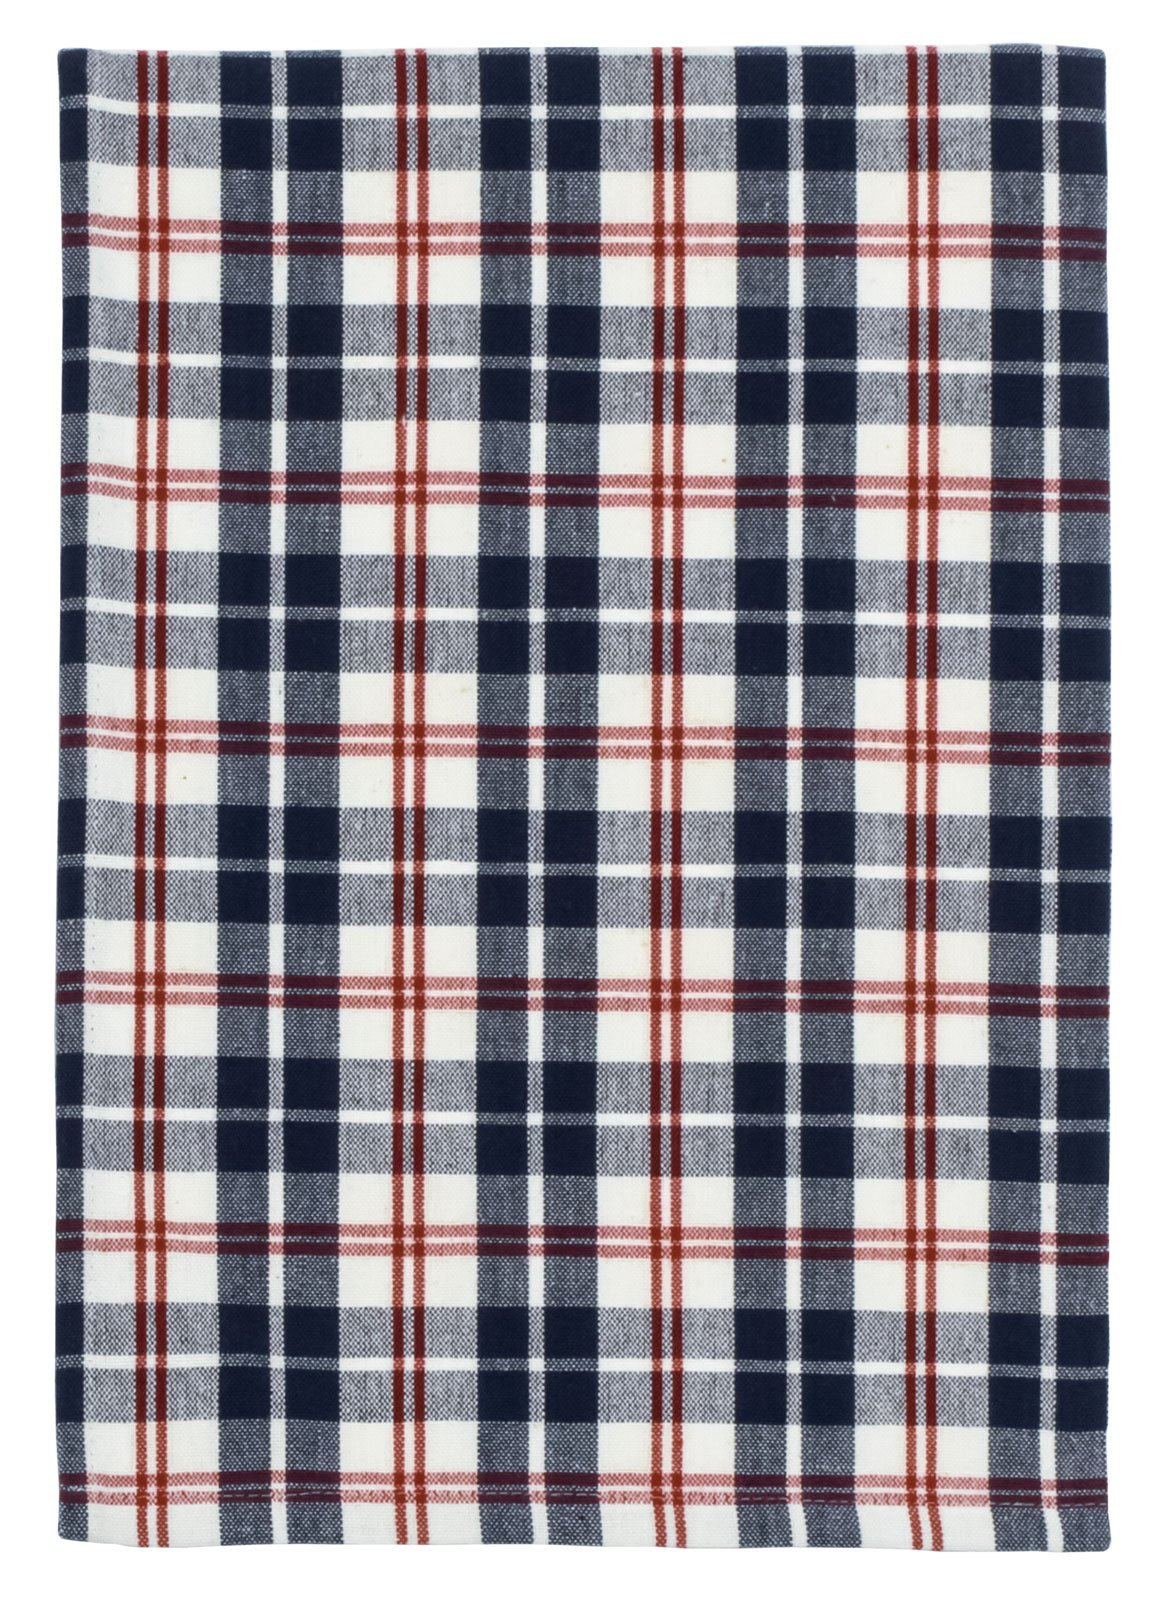 Traders and Company 100% Cotton Navy Red & White Plaid 20''x28'' Dish Towel, Set of 6 - Cape Cod